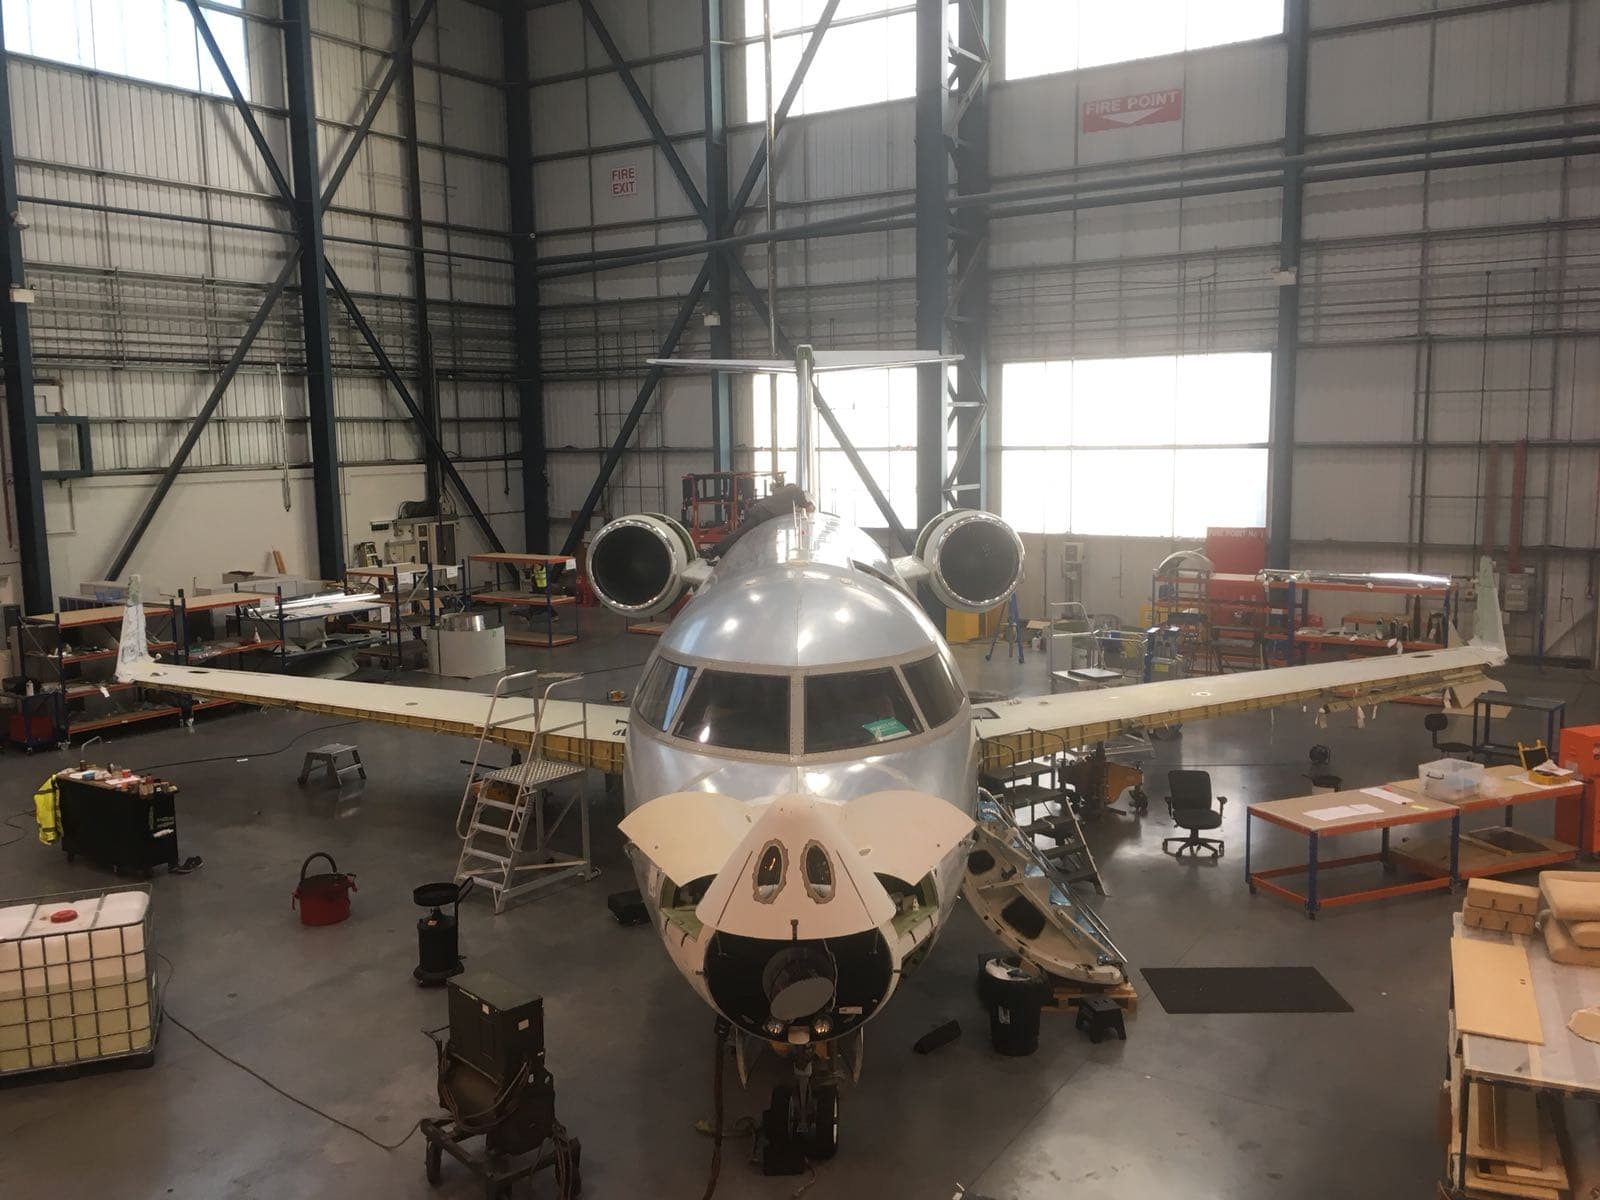 Challenger 604 ADS-B Out